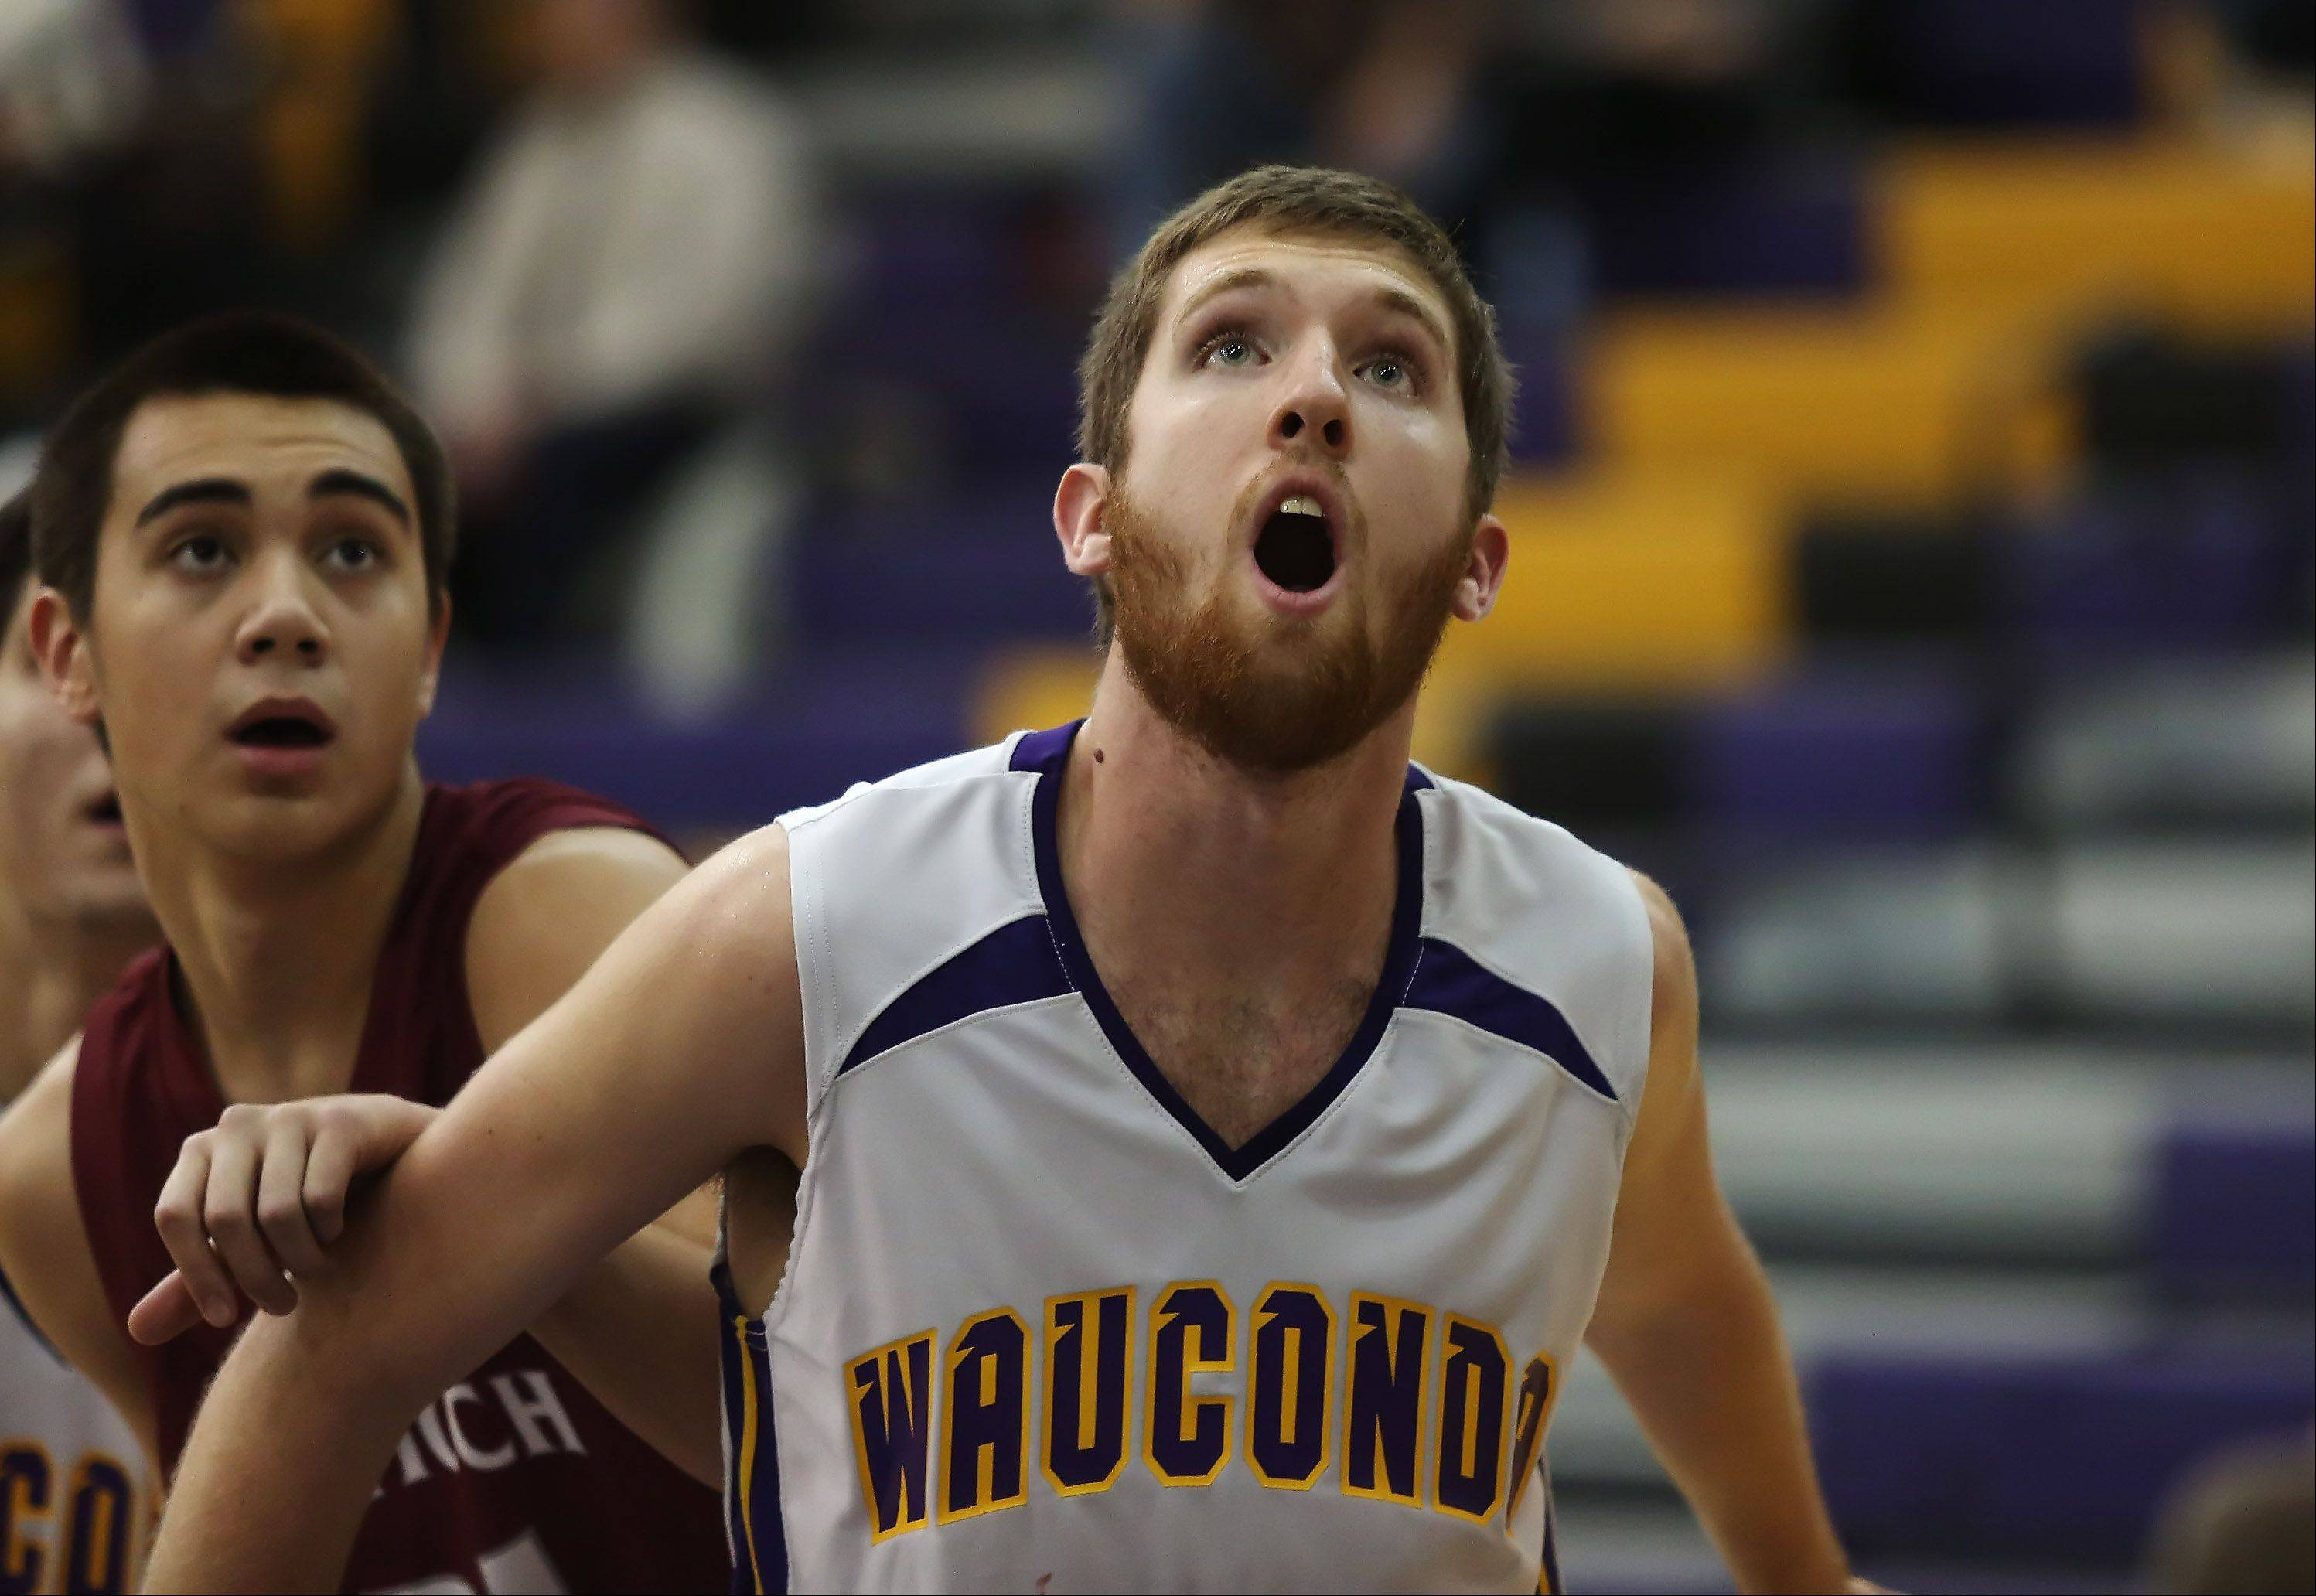 Cross country has helped Wauconda forward Ricky Sidlowski prepare for the basketball season.